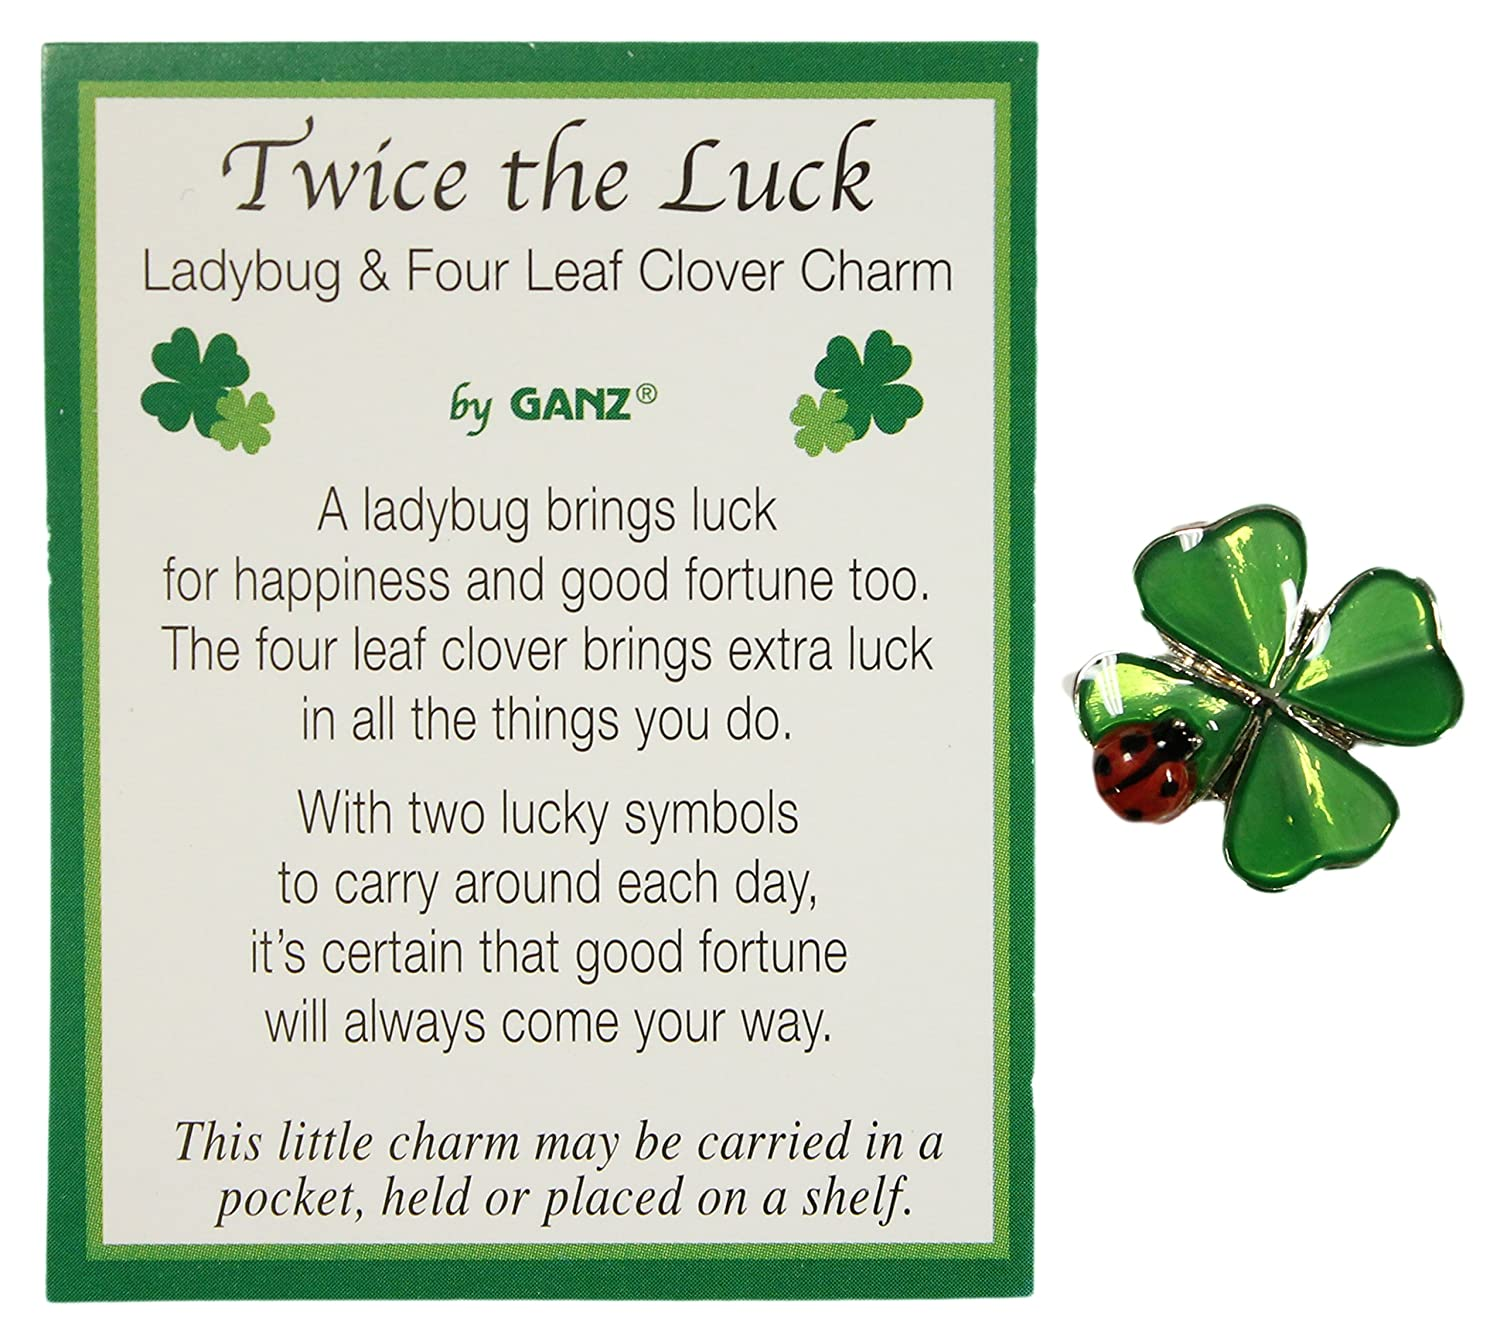 Amazon 1 Ganz Twice The Luck Clover And Lady Bug Charm Home